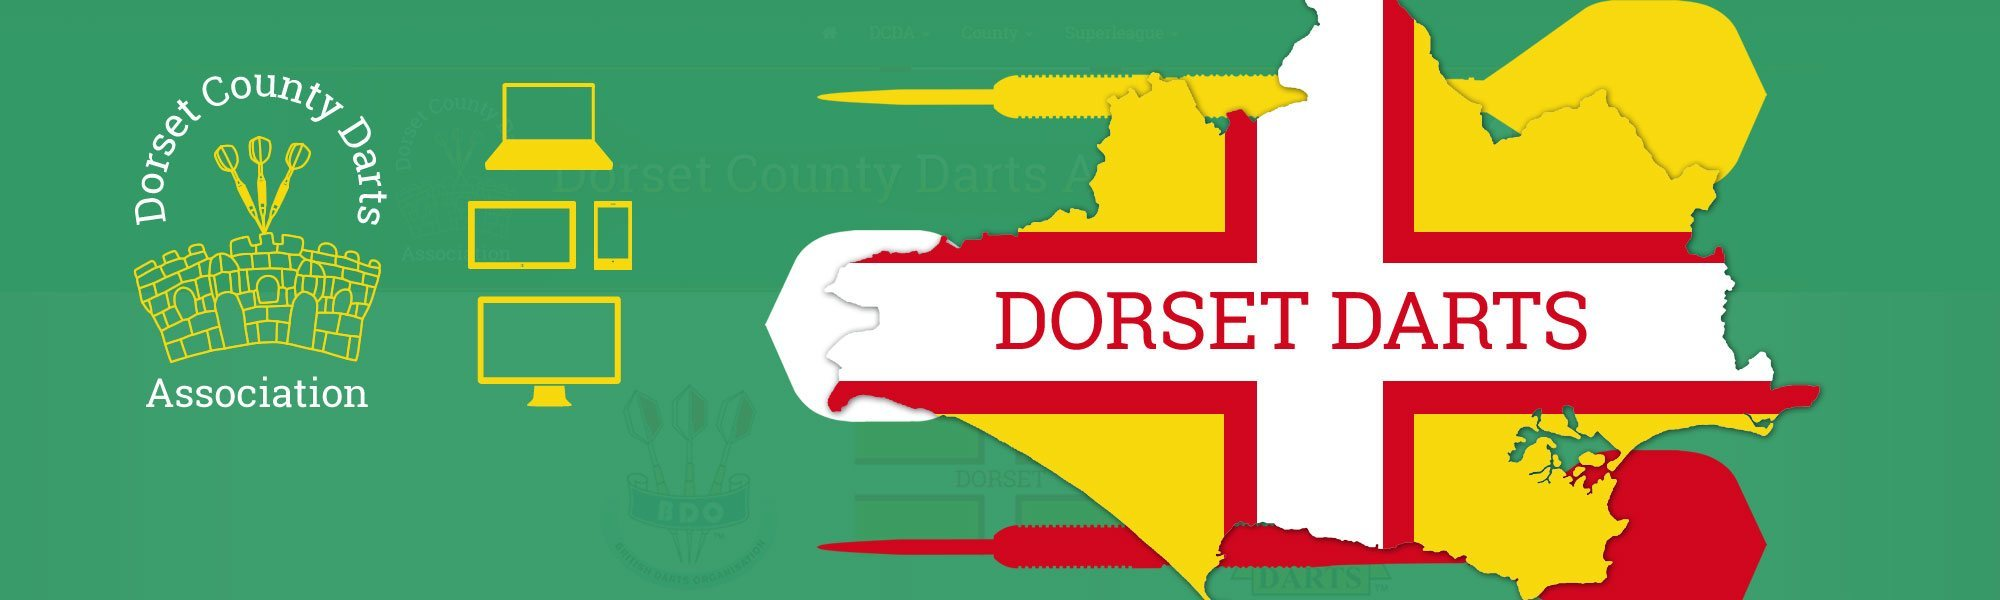 Dorset County Darts Association Website Redesign - Banner